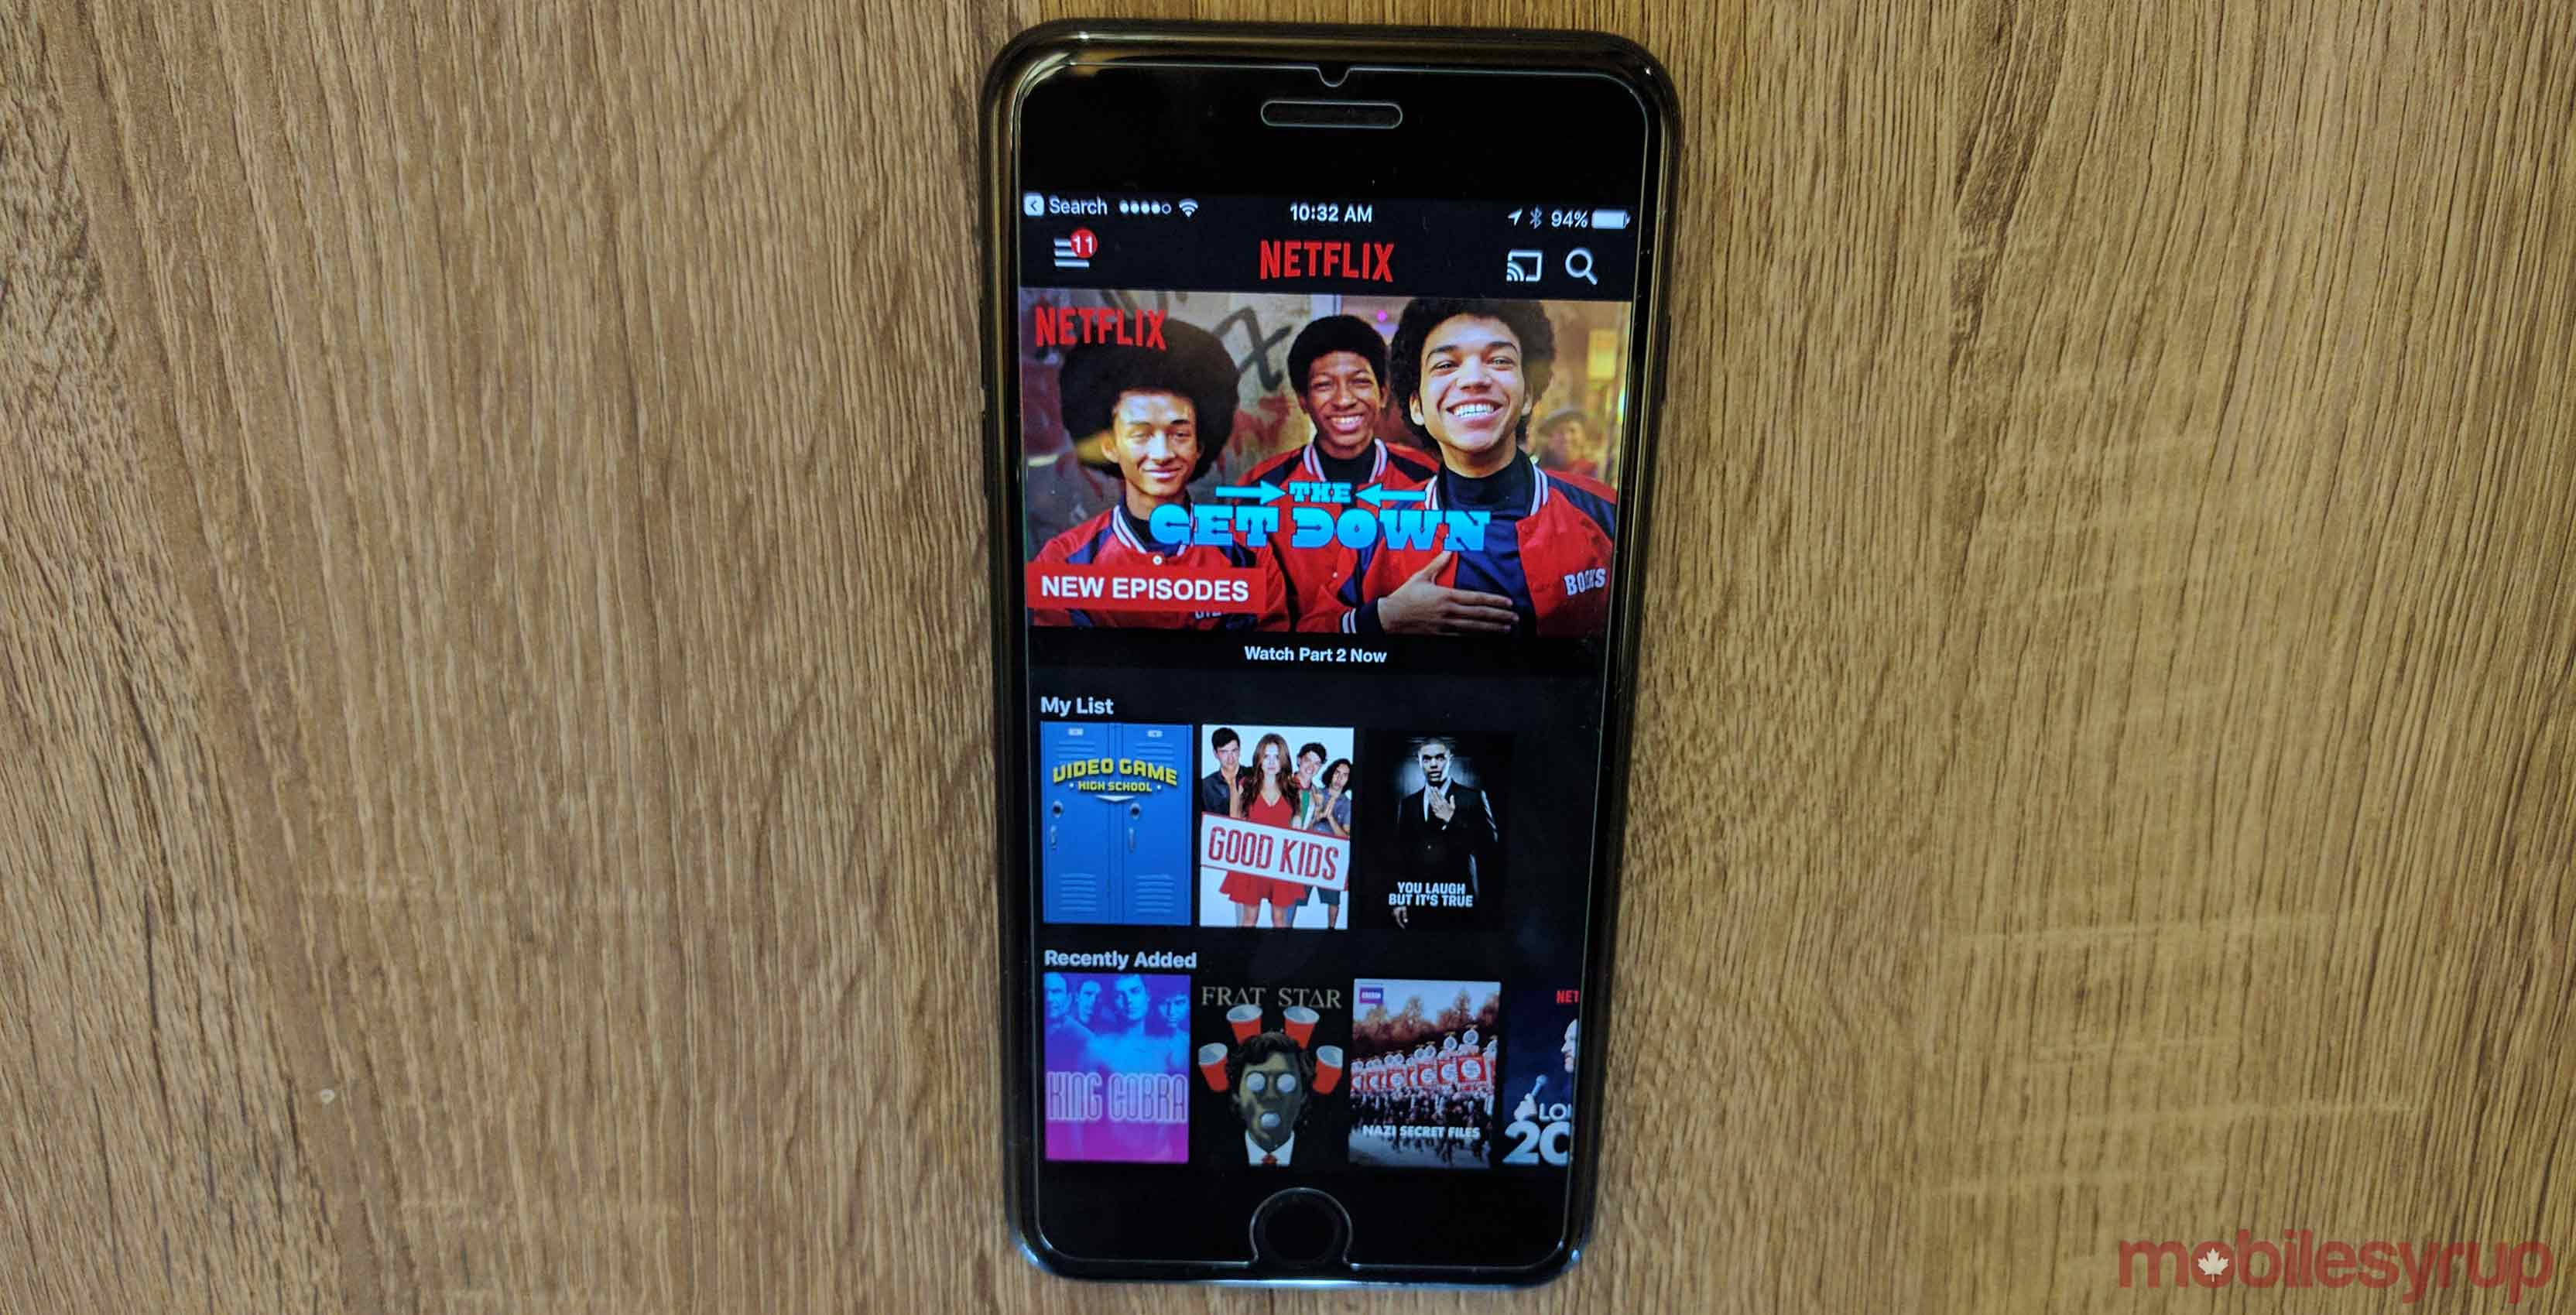 Netflix app opened on an iPhone 7